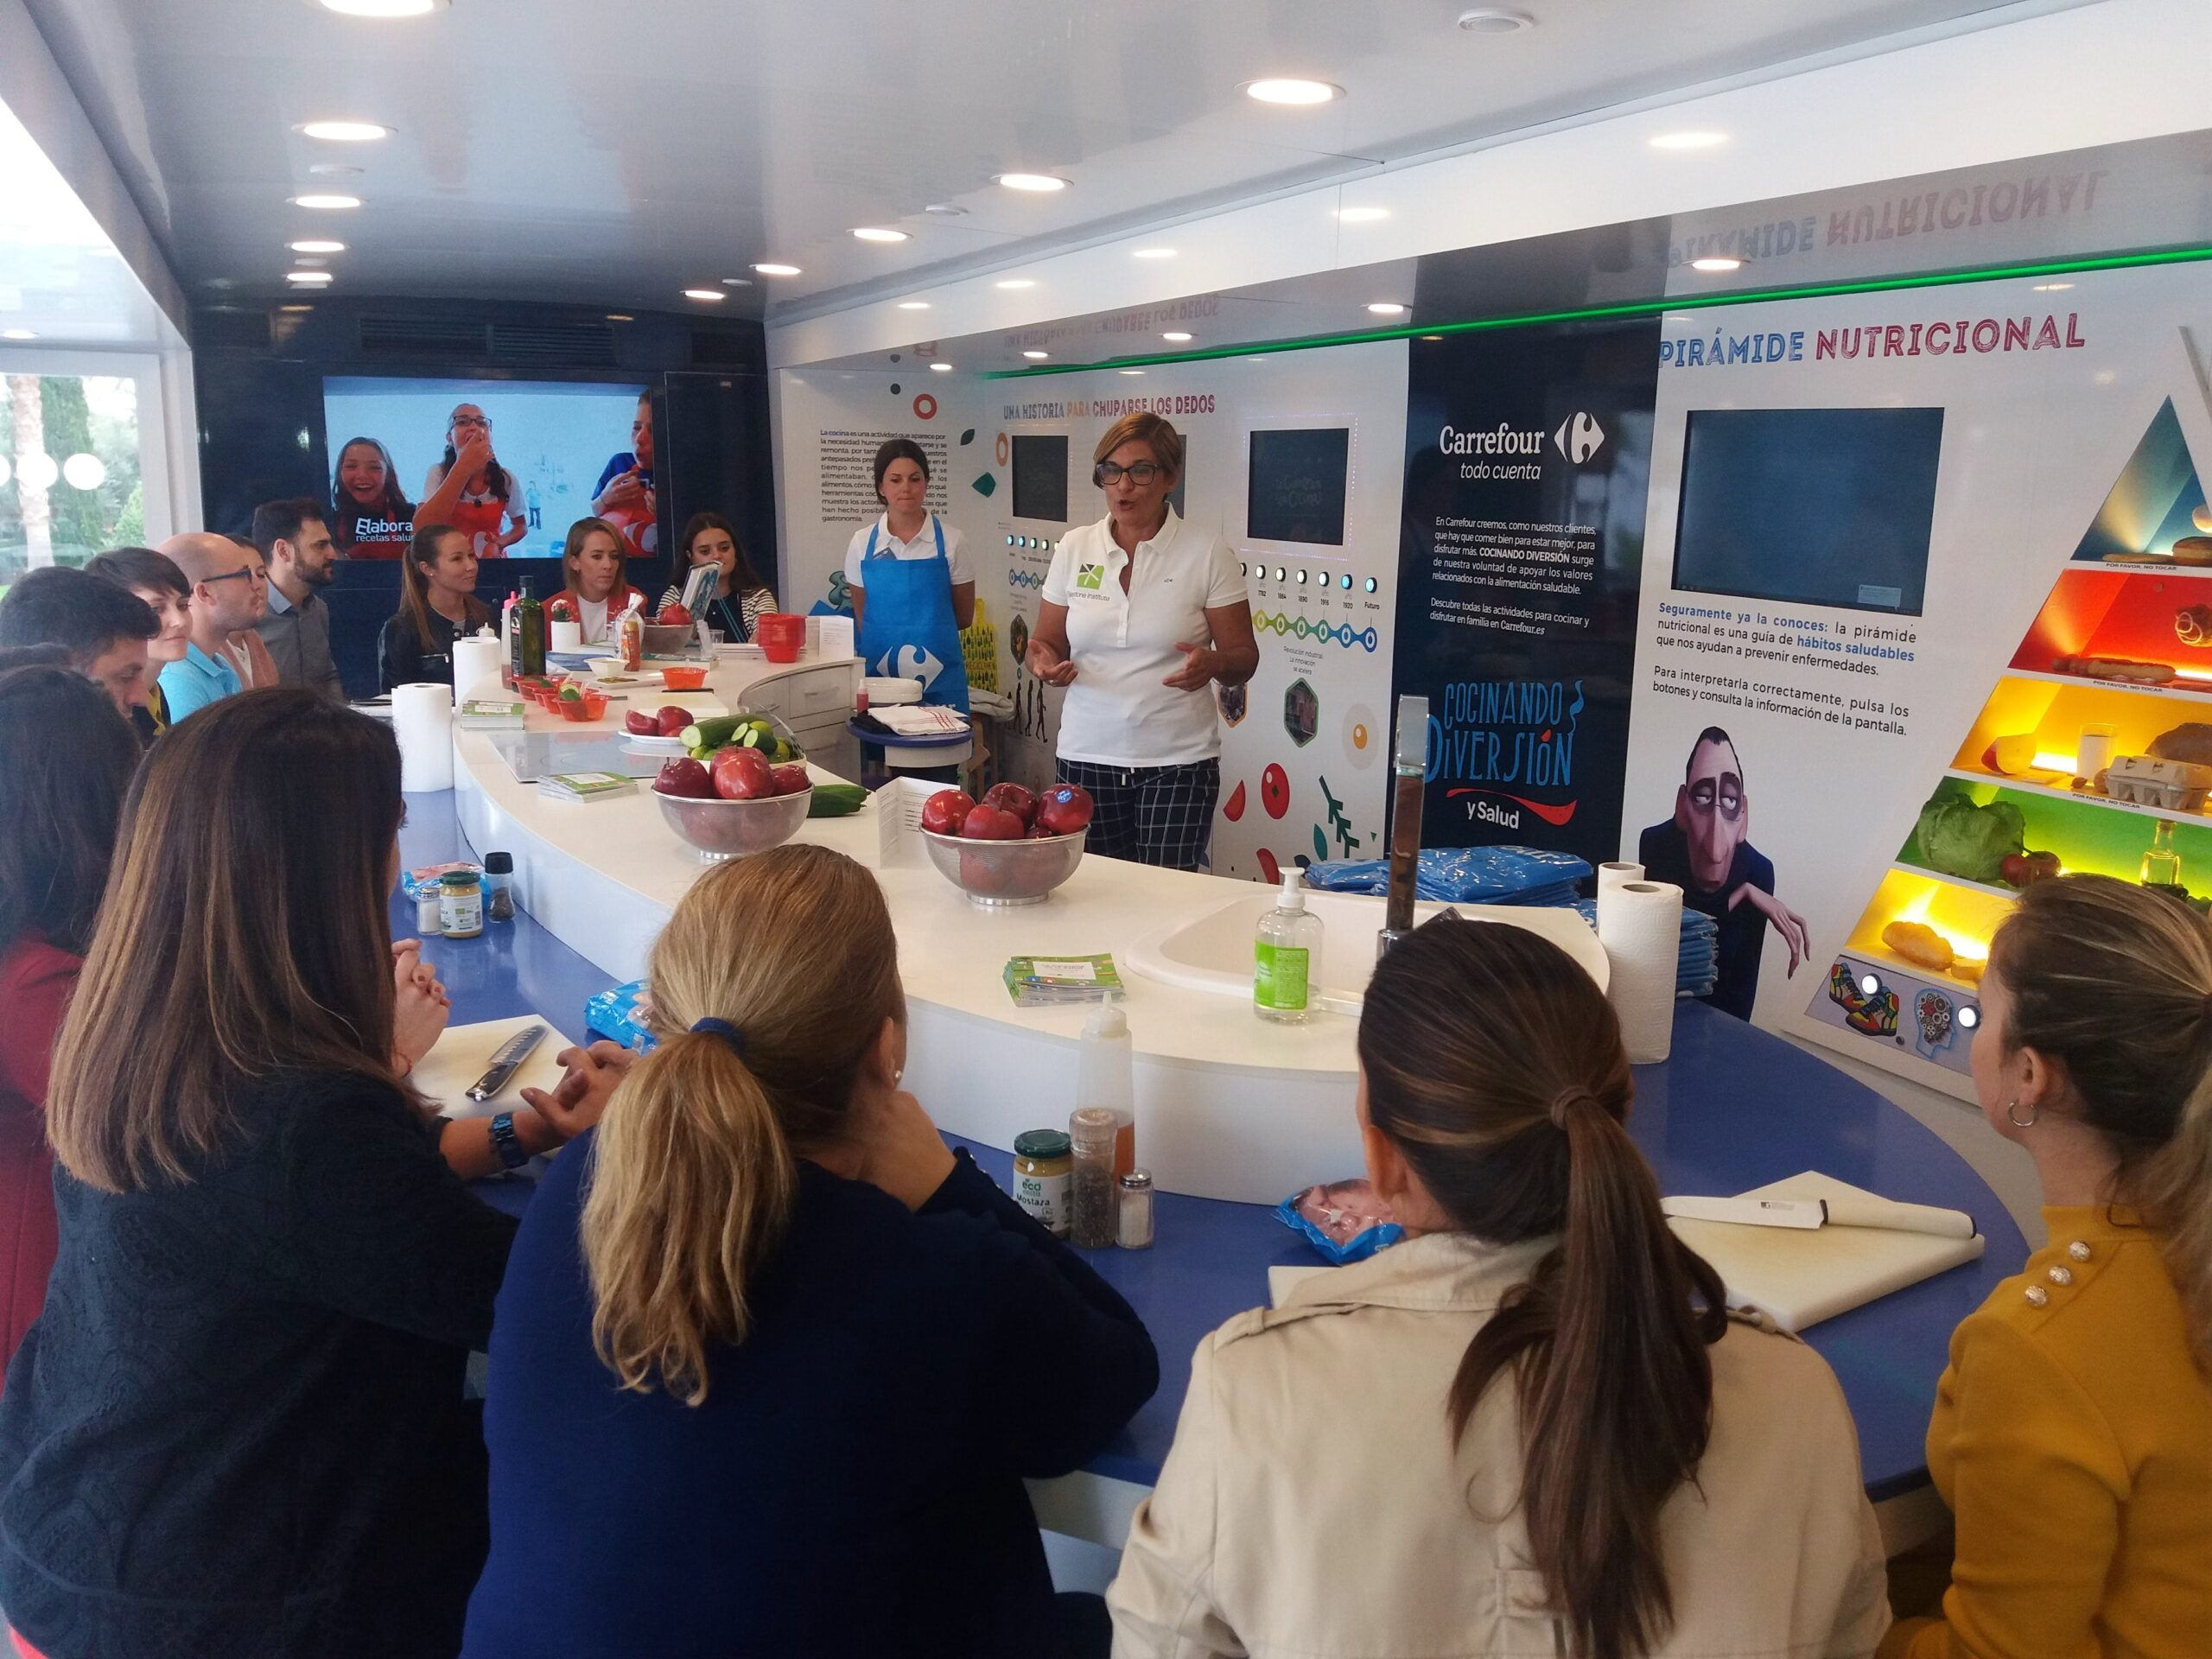 Image of InstitutoSilestone CaravanadelaSalud en Cosentino 6 scaled in Cosentino promotes good nutrition and food safety - Cosentino